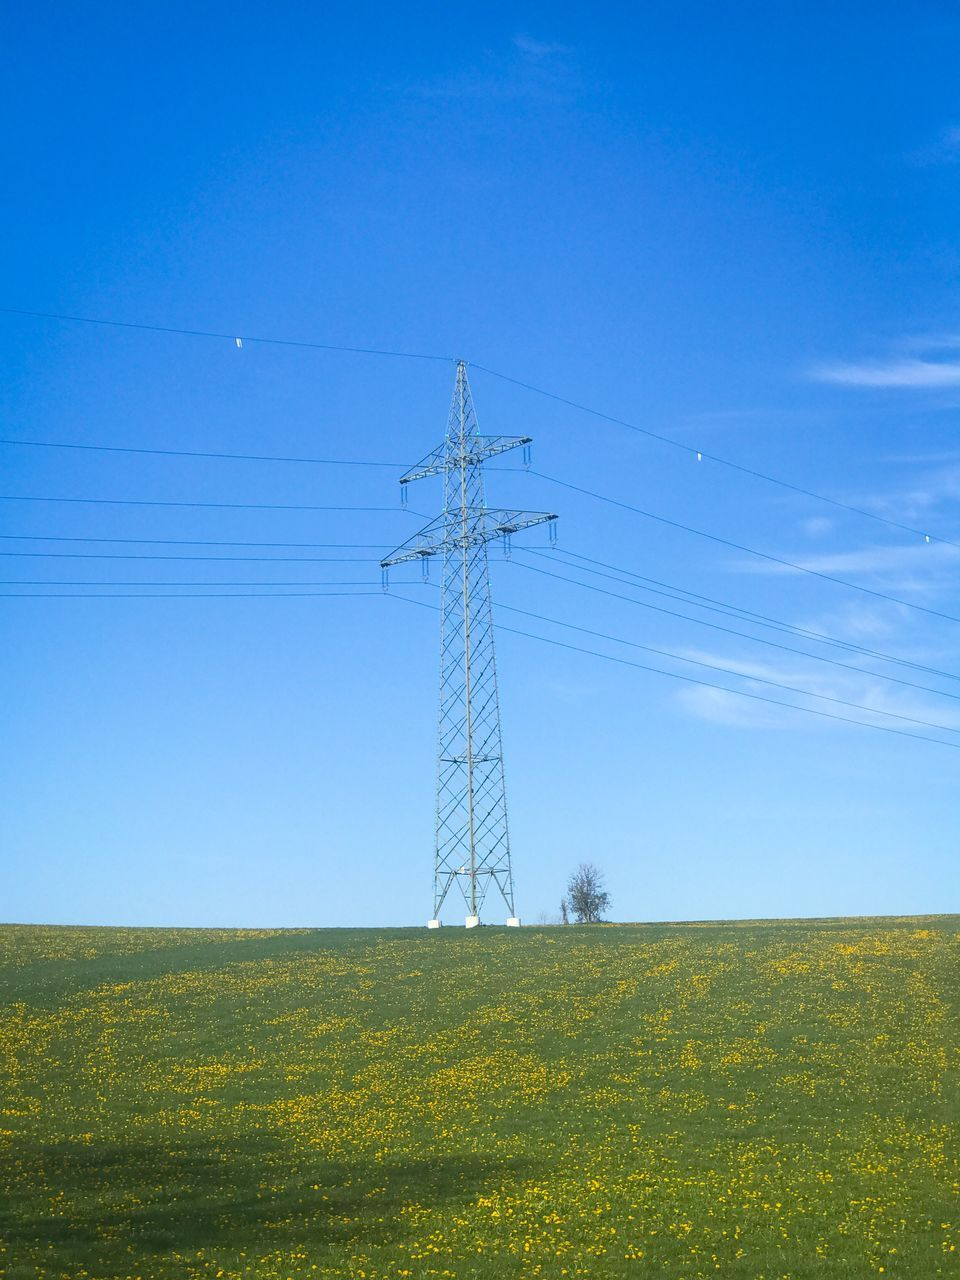 cable, field, electricity pylon, electricity, connection, landscape, no people, day, power supply, power line, fuel and power generation, grass, sky, nature, blue, low angle view, tranquility, tranquil scene, rural scene, outdoors, clear sky, growth, technology, scenics, beauty in nature, tree